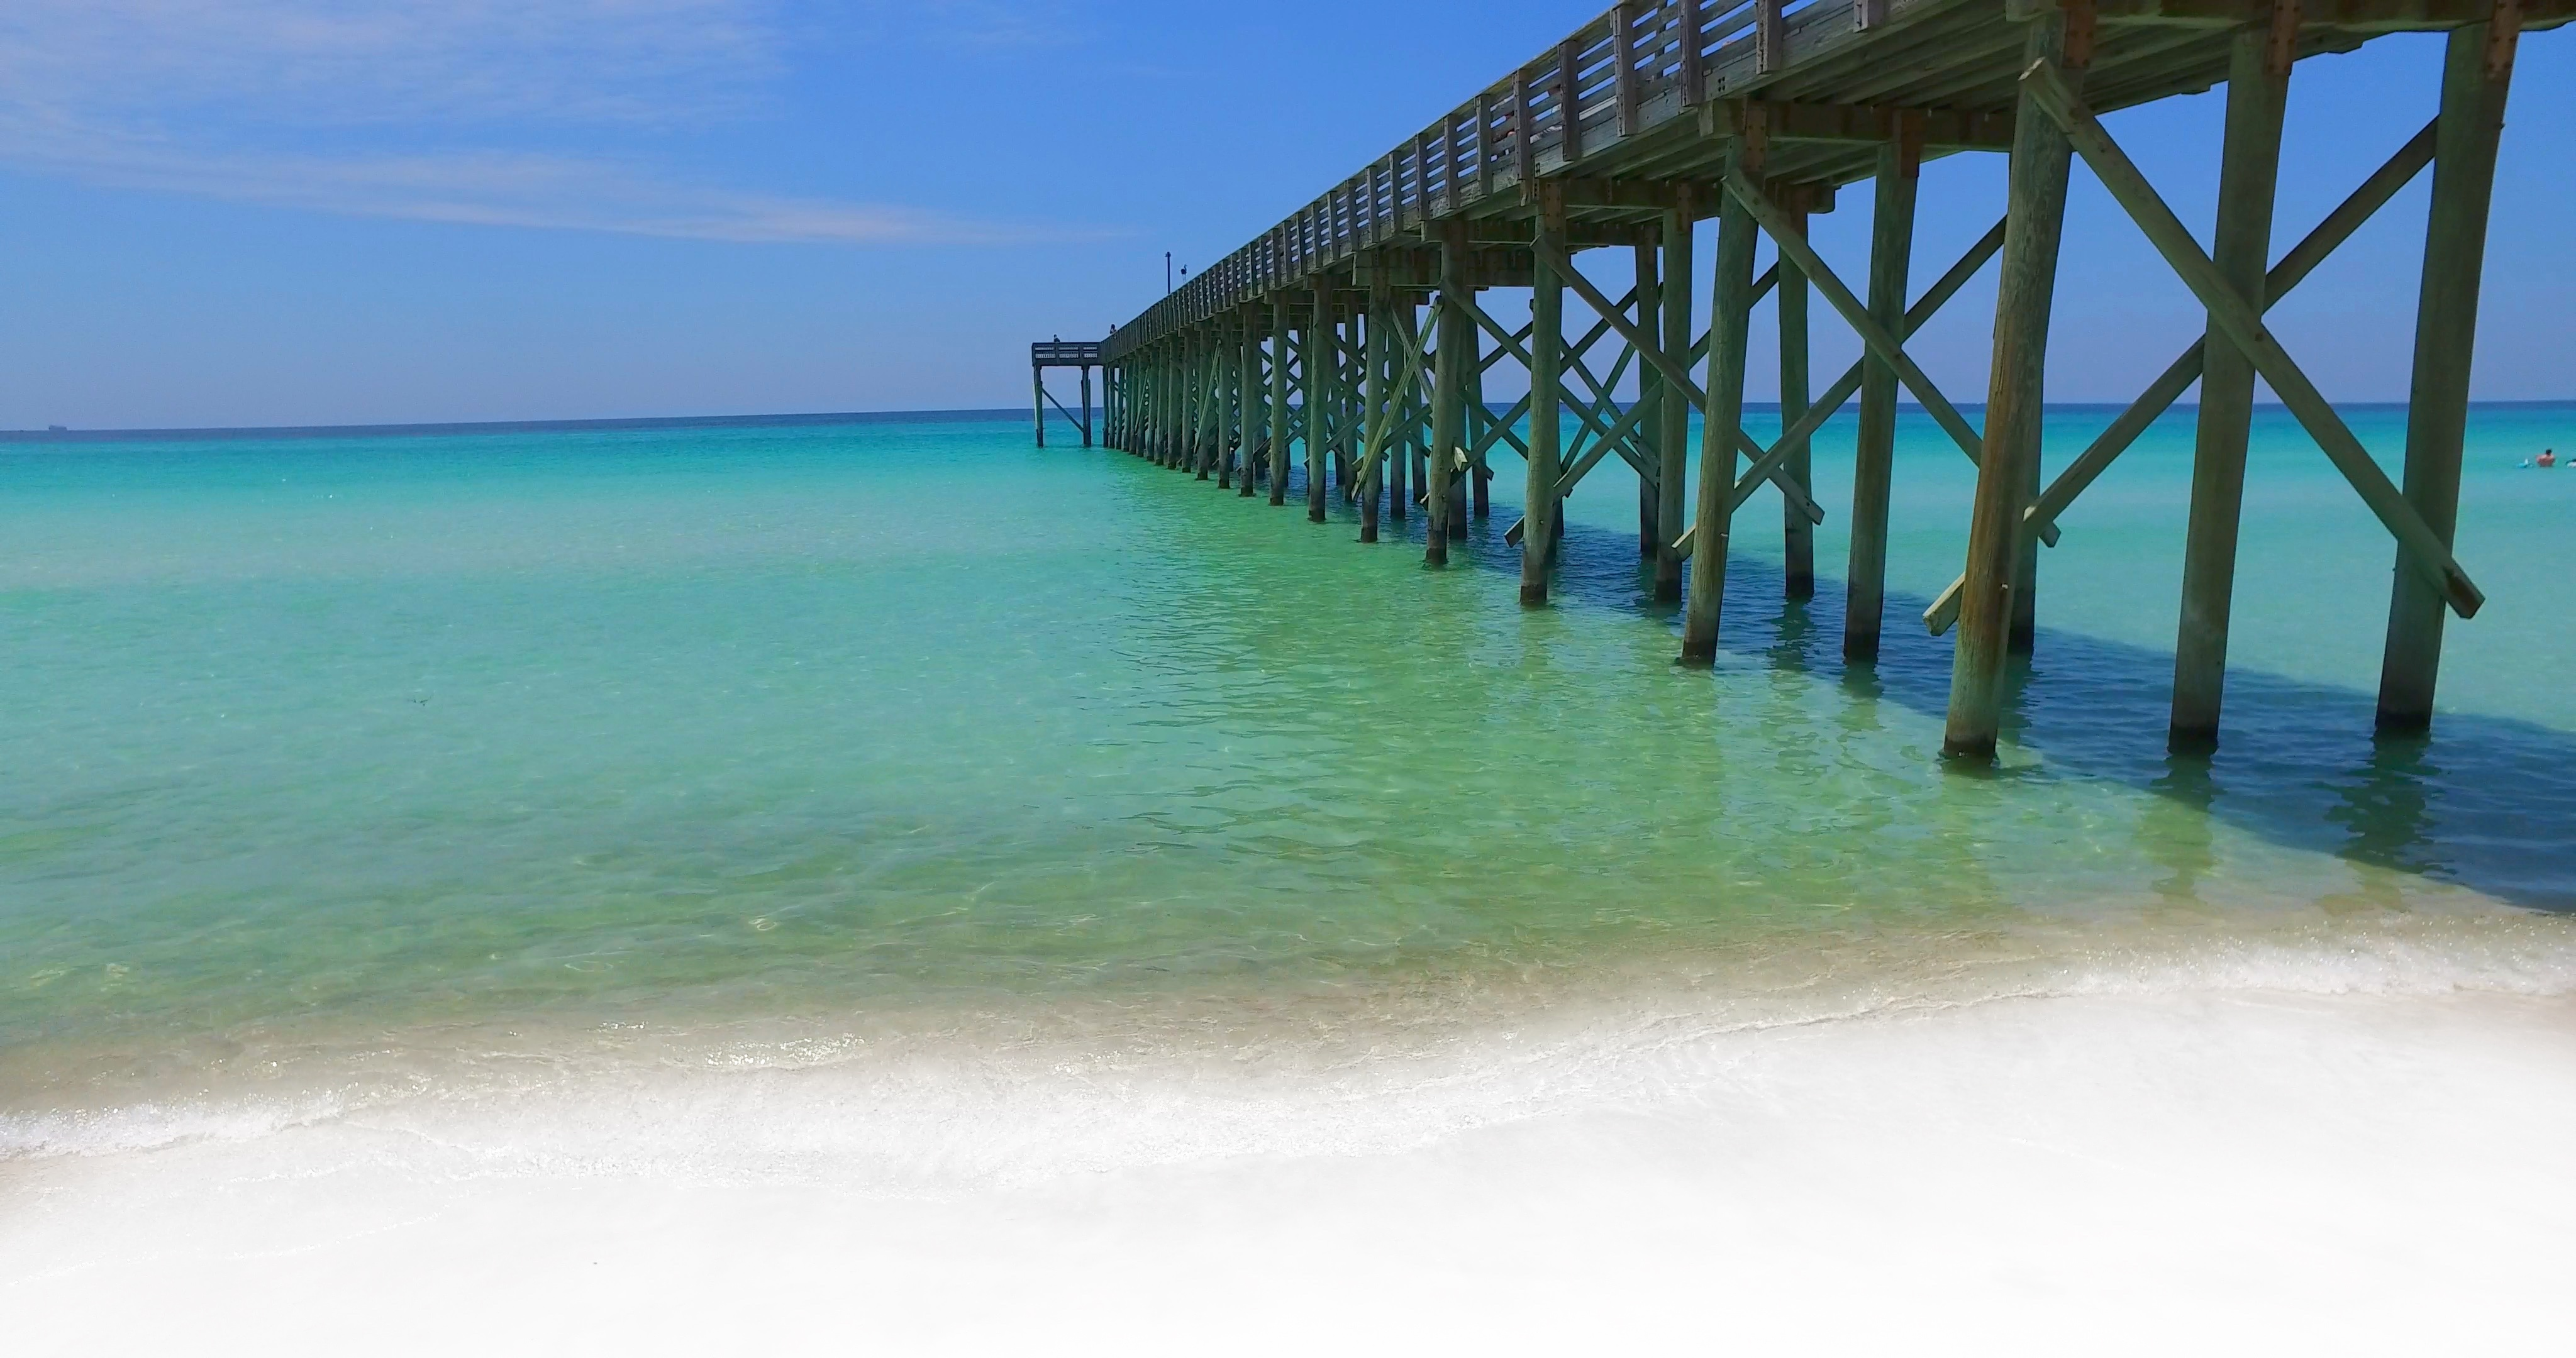 Panama City Beach Weather | Current Conditions and Seasonal Averages